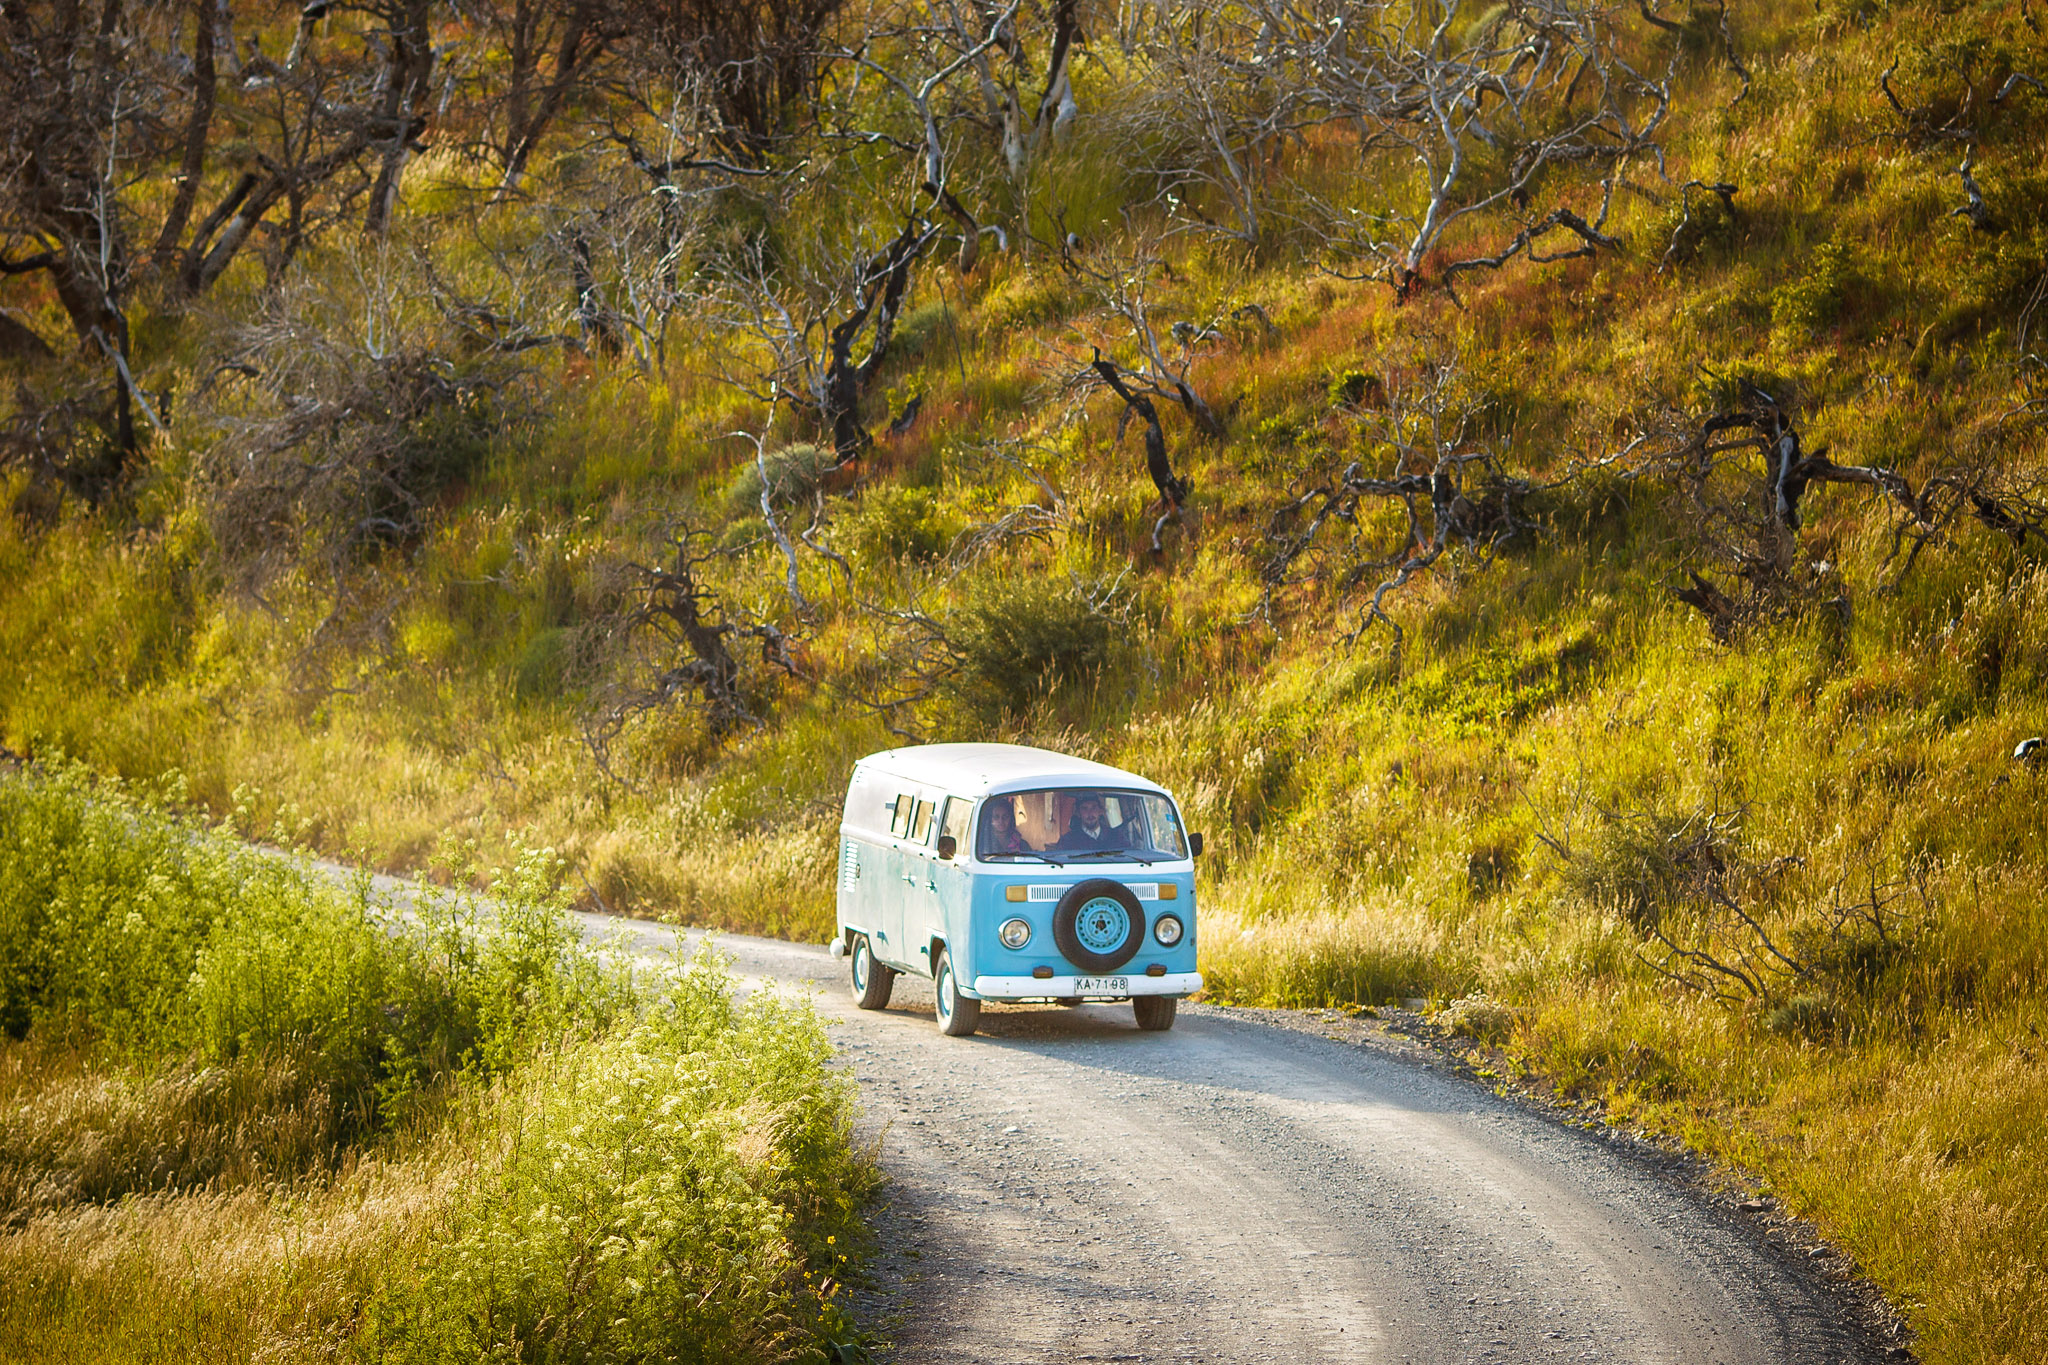 Wedding-Travellers-Overlanding-Destination-Wedding-Chile-Torres-del-Paine-old-car-van